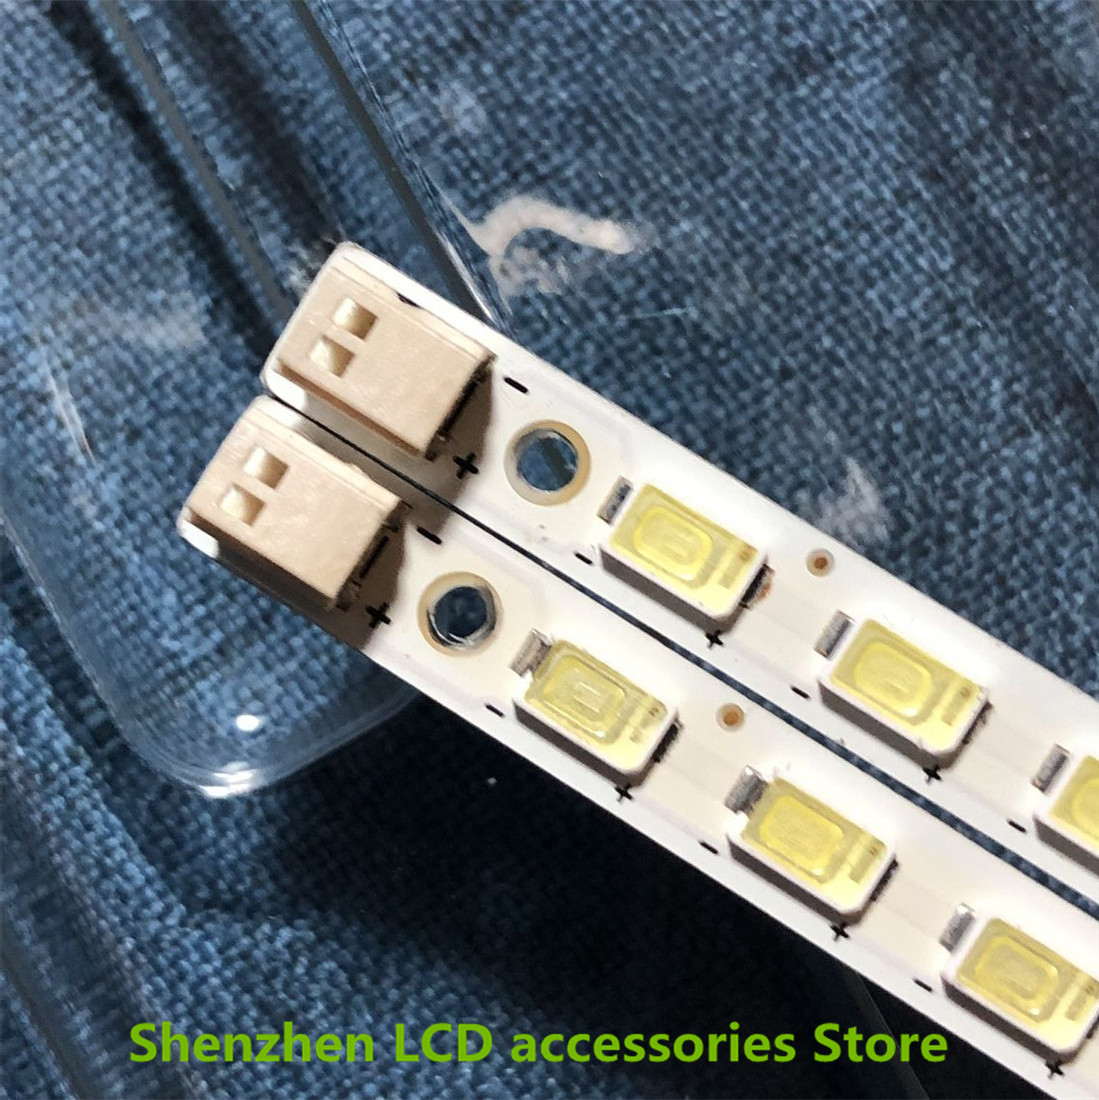 4Pieces/lot   For Toshiba 40BF1C LCD Backlit TV Lamp Strip LJ64-02267A/02268A With Screen LTA400HF16    56LED   453MM